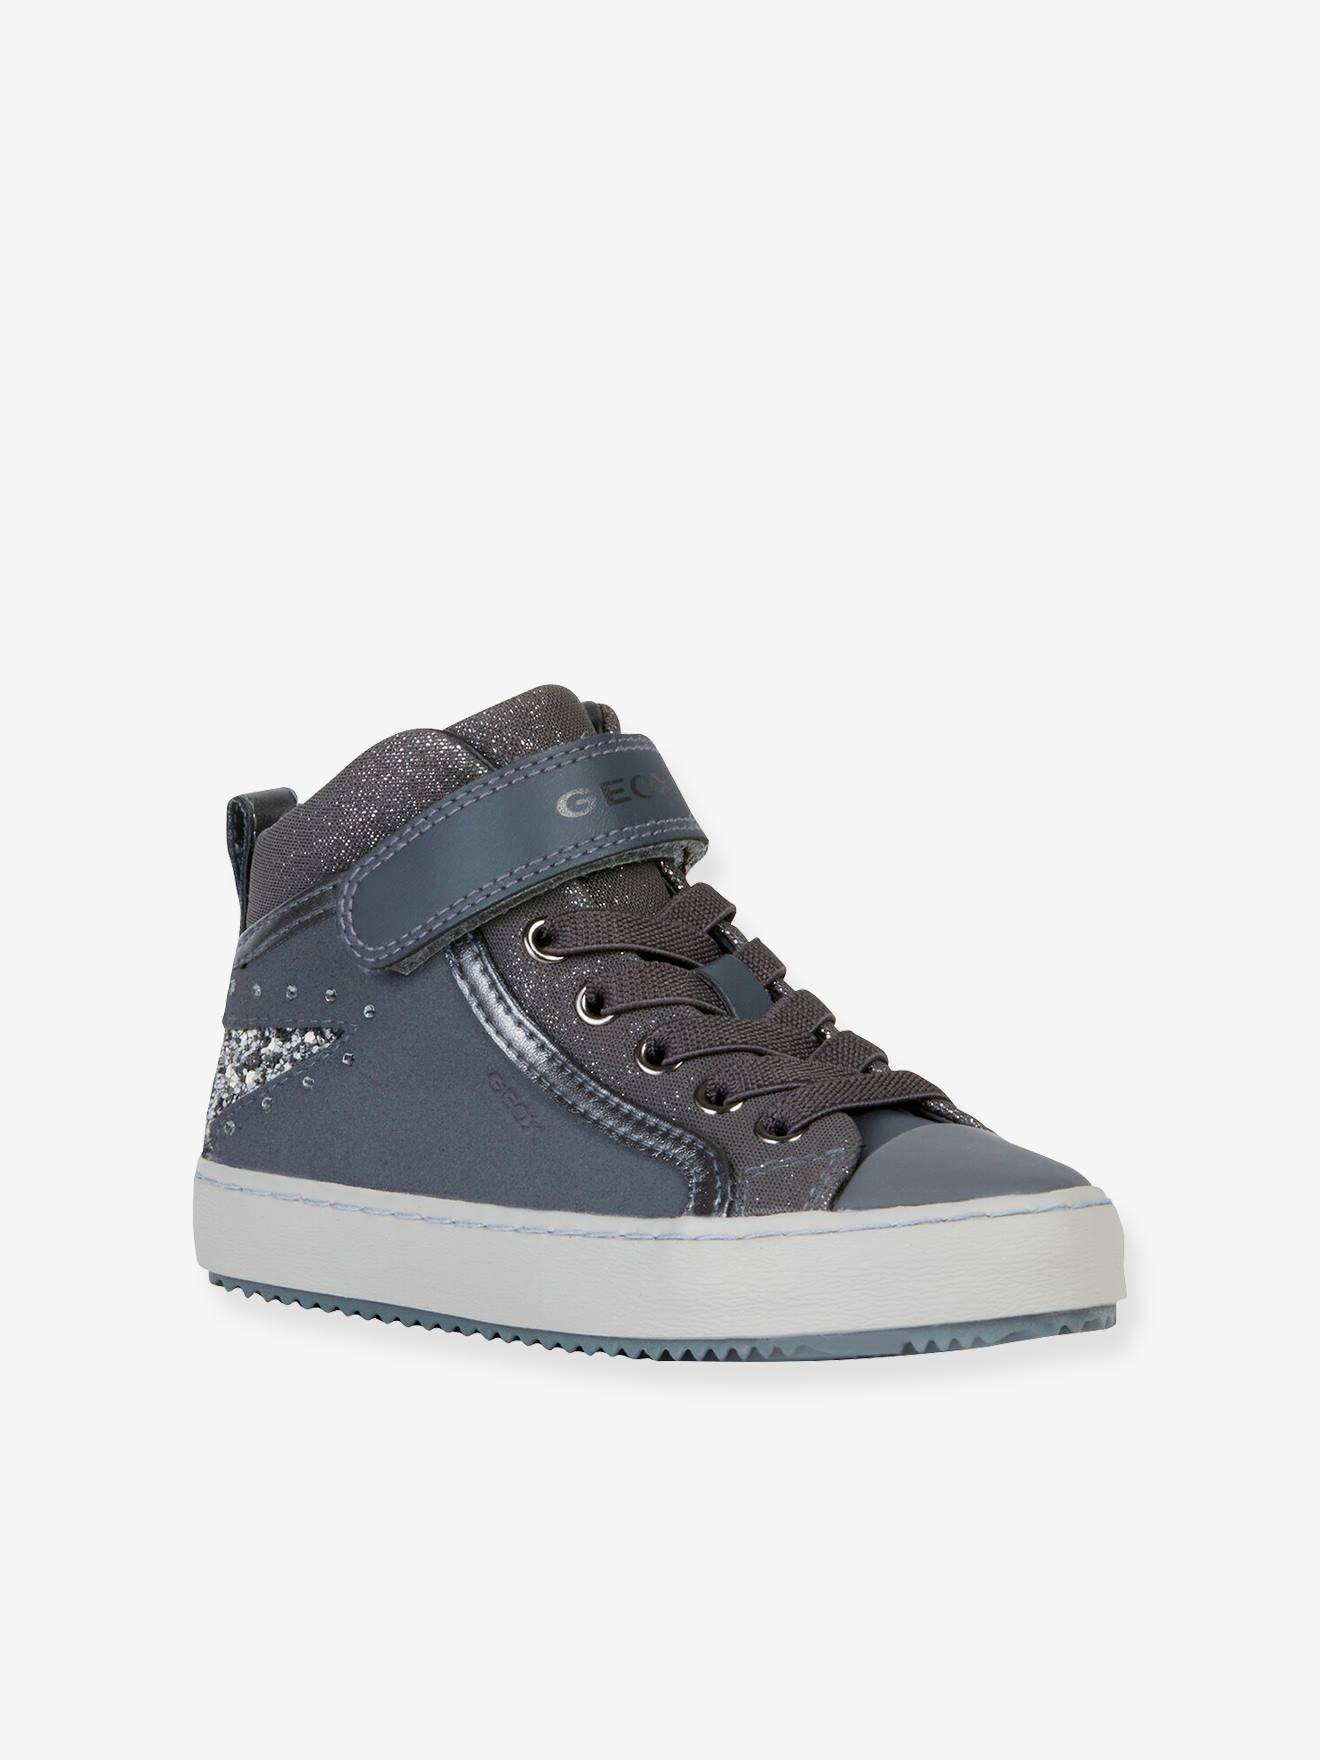 Kalispera Girl M High Top Trainers for